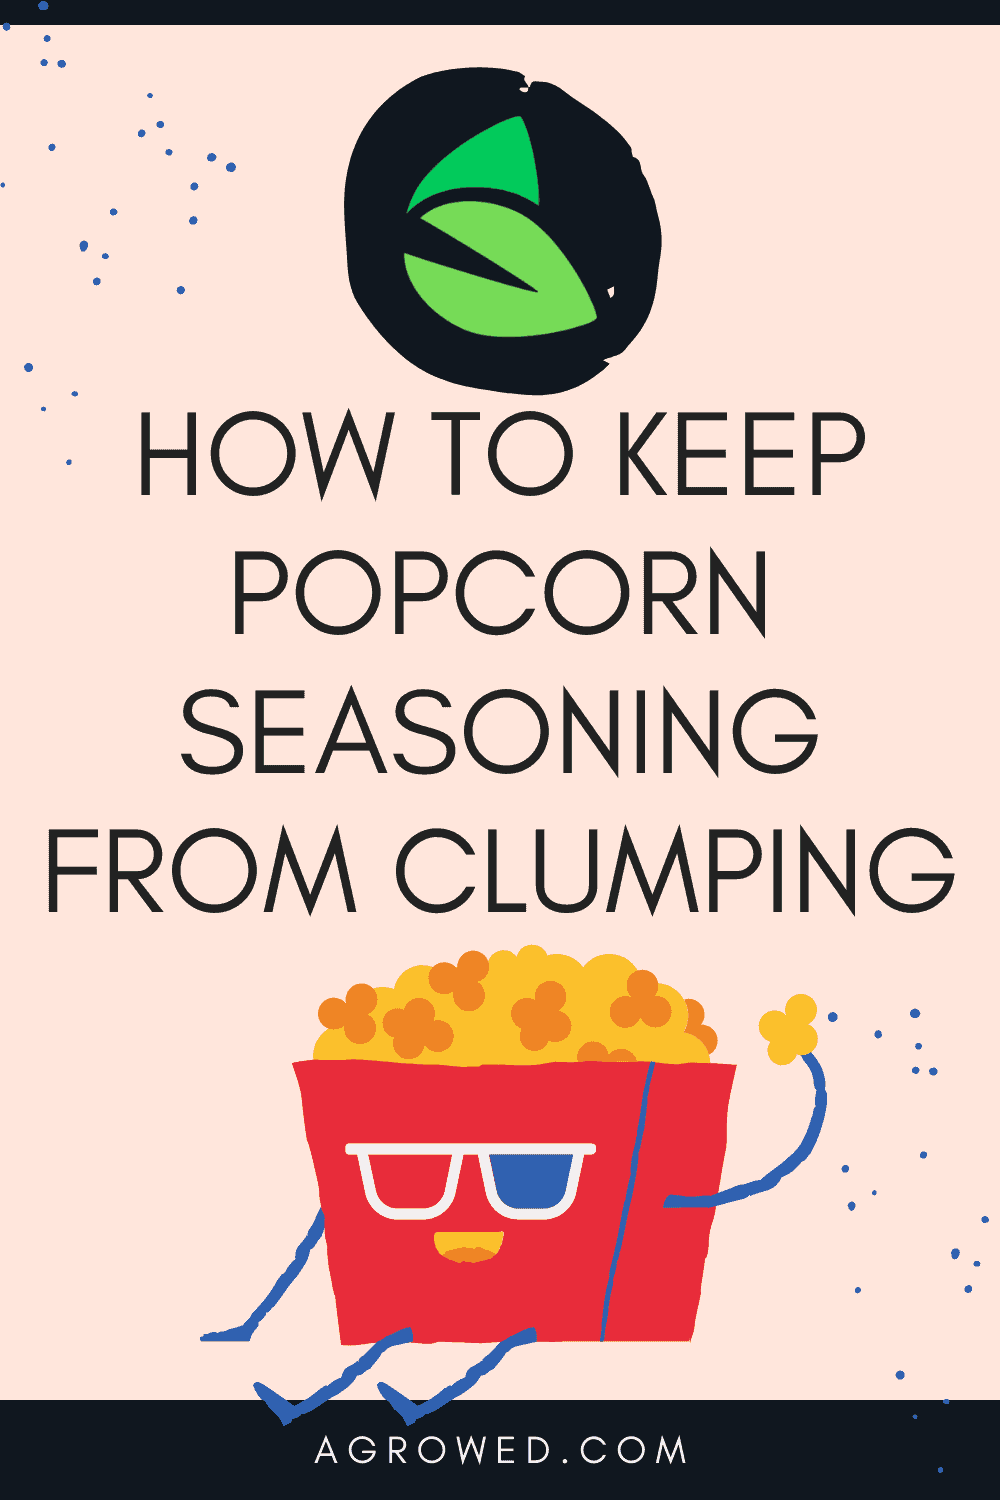 How to Keep Popcorn Seasoning From Clumping